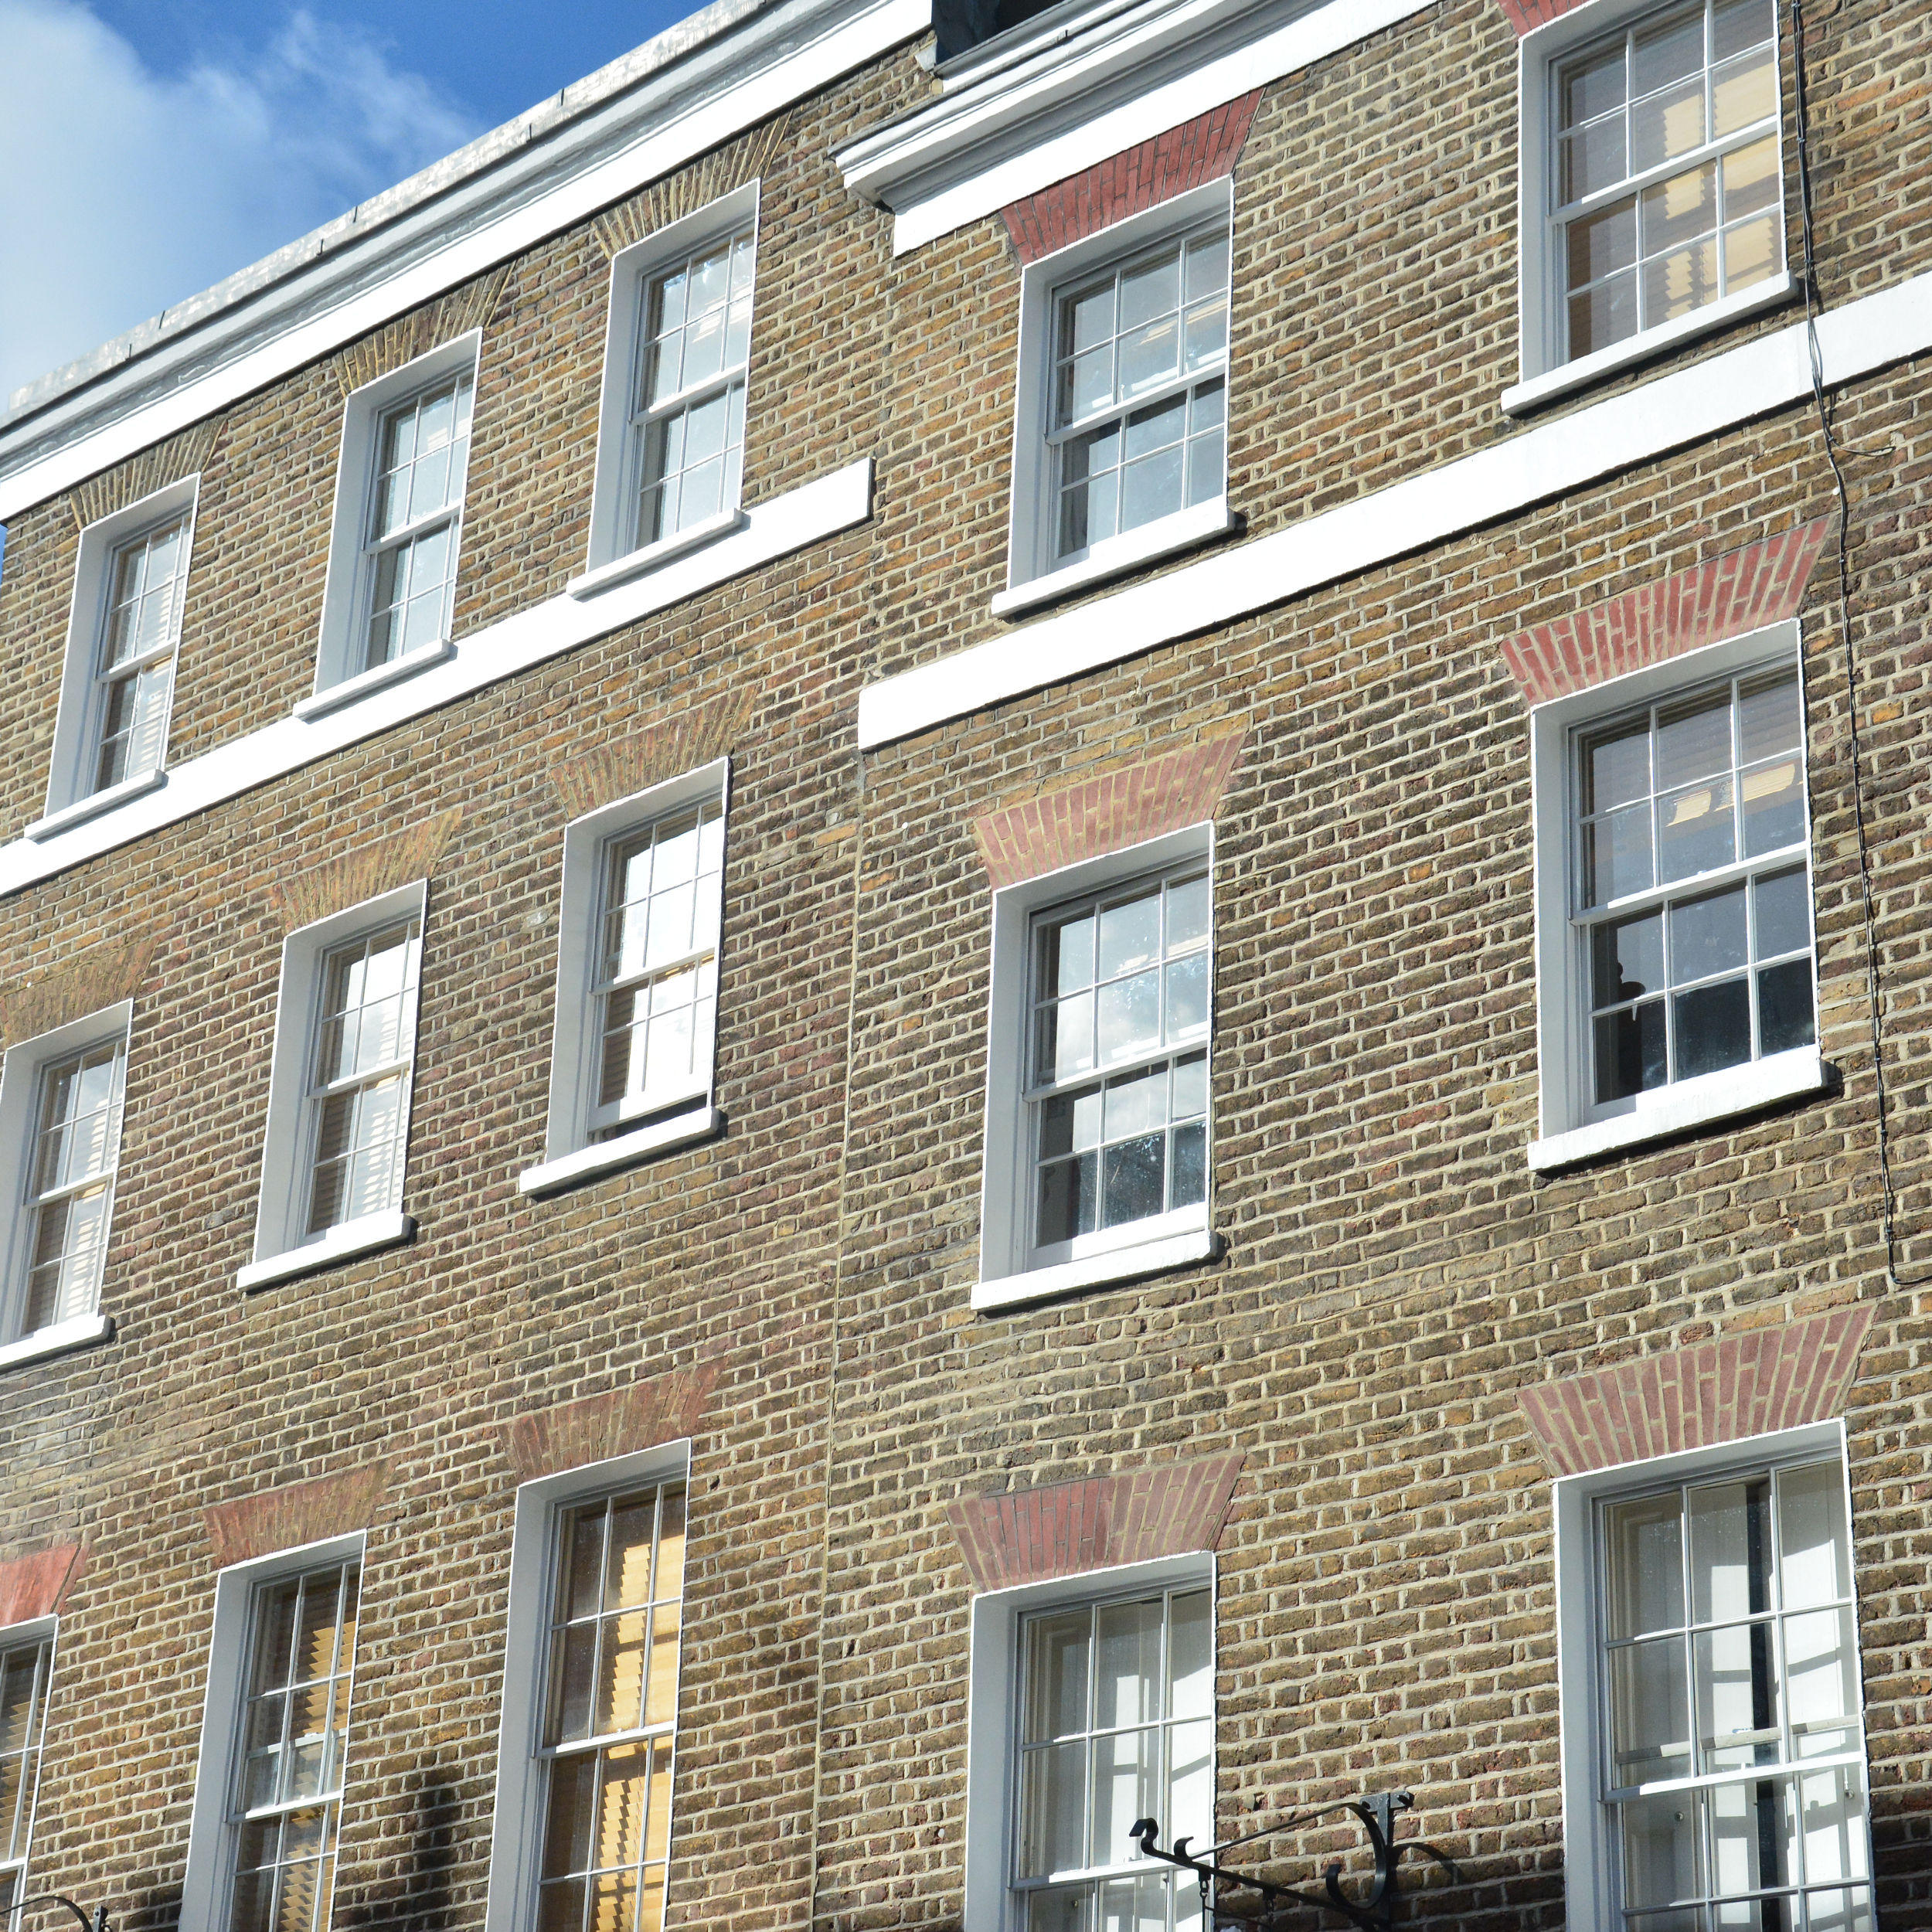 Period property in central London showcasing the external restoration work carried out by axis